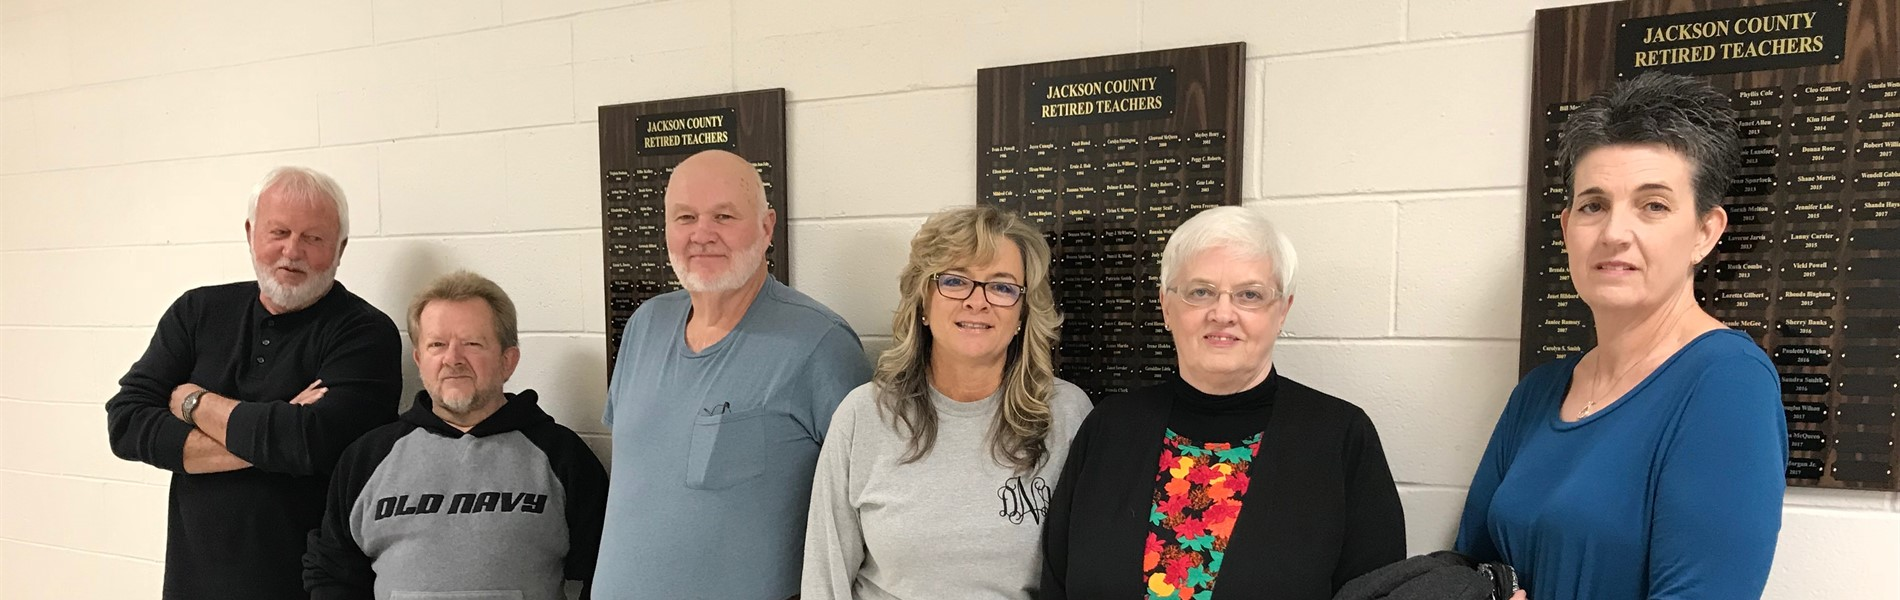 Jackson County Board Members & Retired Teachers with new Plaques